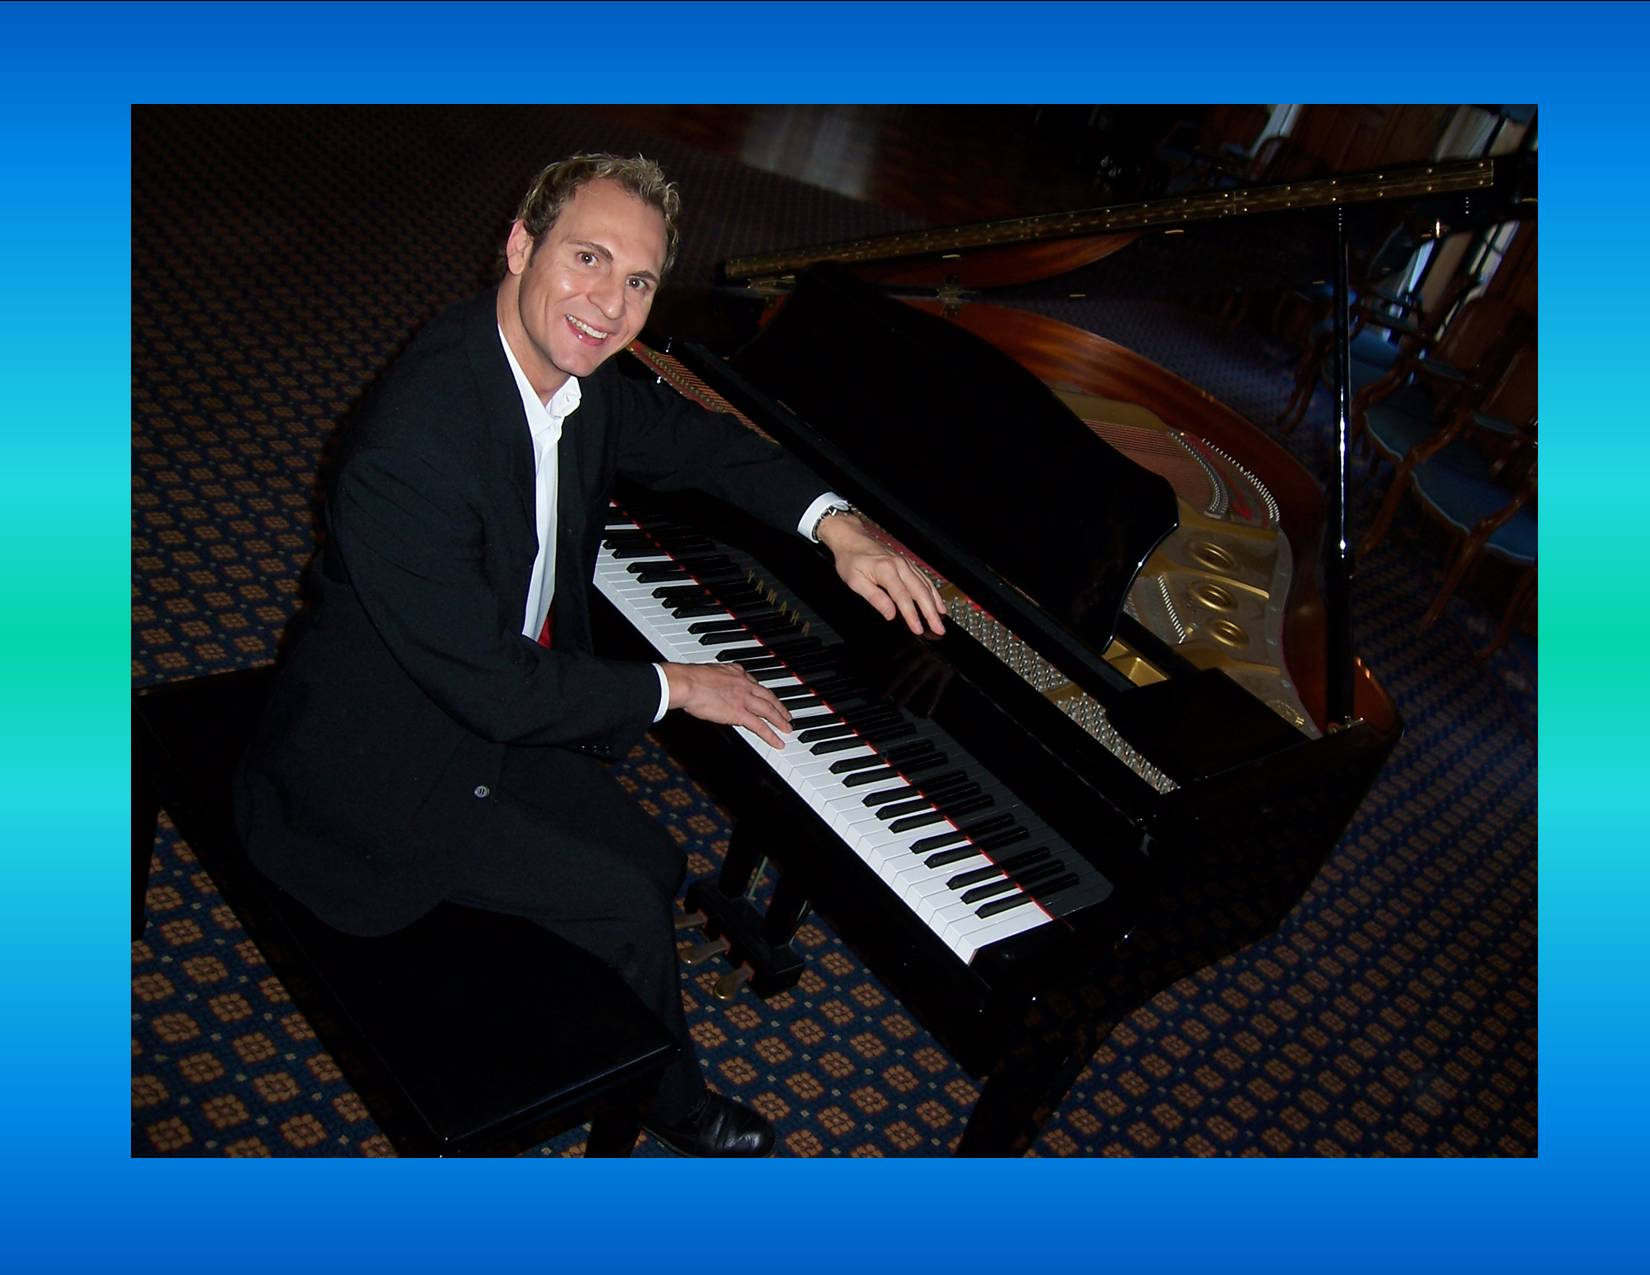 Rob Martin. Pianist and Vocalist. Based in South Canterbury, New Zealand. http://www.talentonline.co.nz/rob-martin-pianist-singer.html